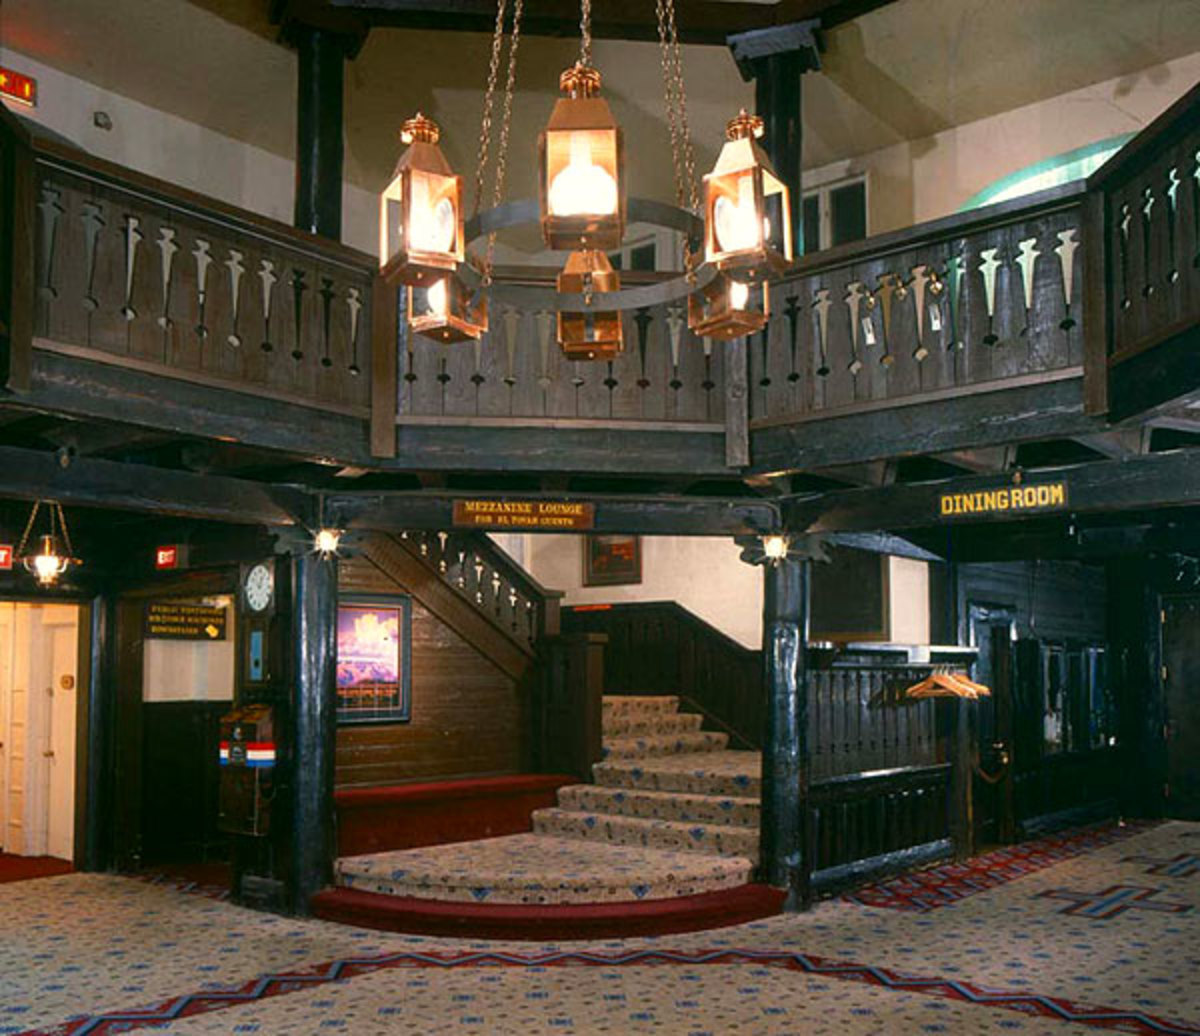 The El Tovar Hotel at the Grand Canyon opened its rustic doors in 1905.